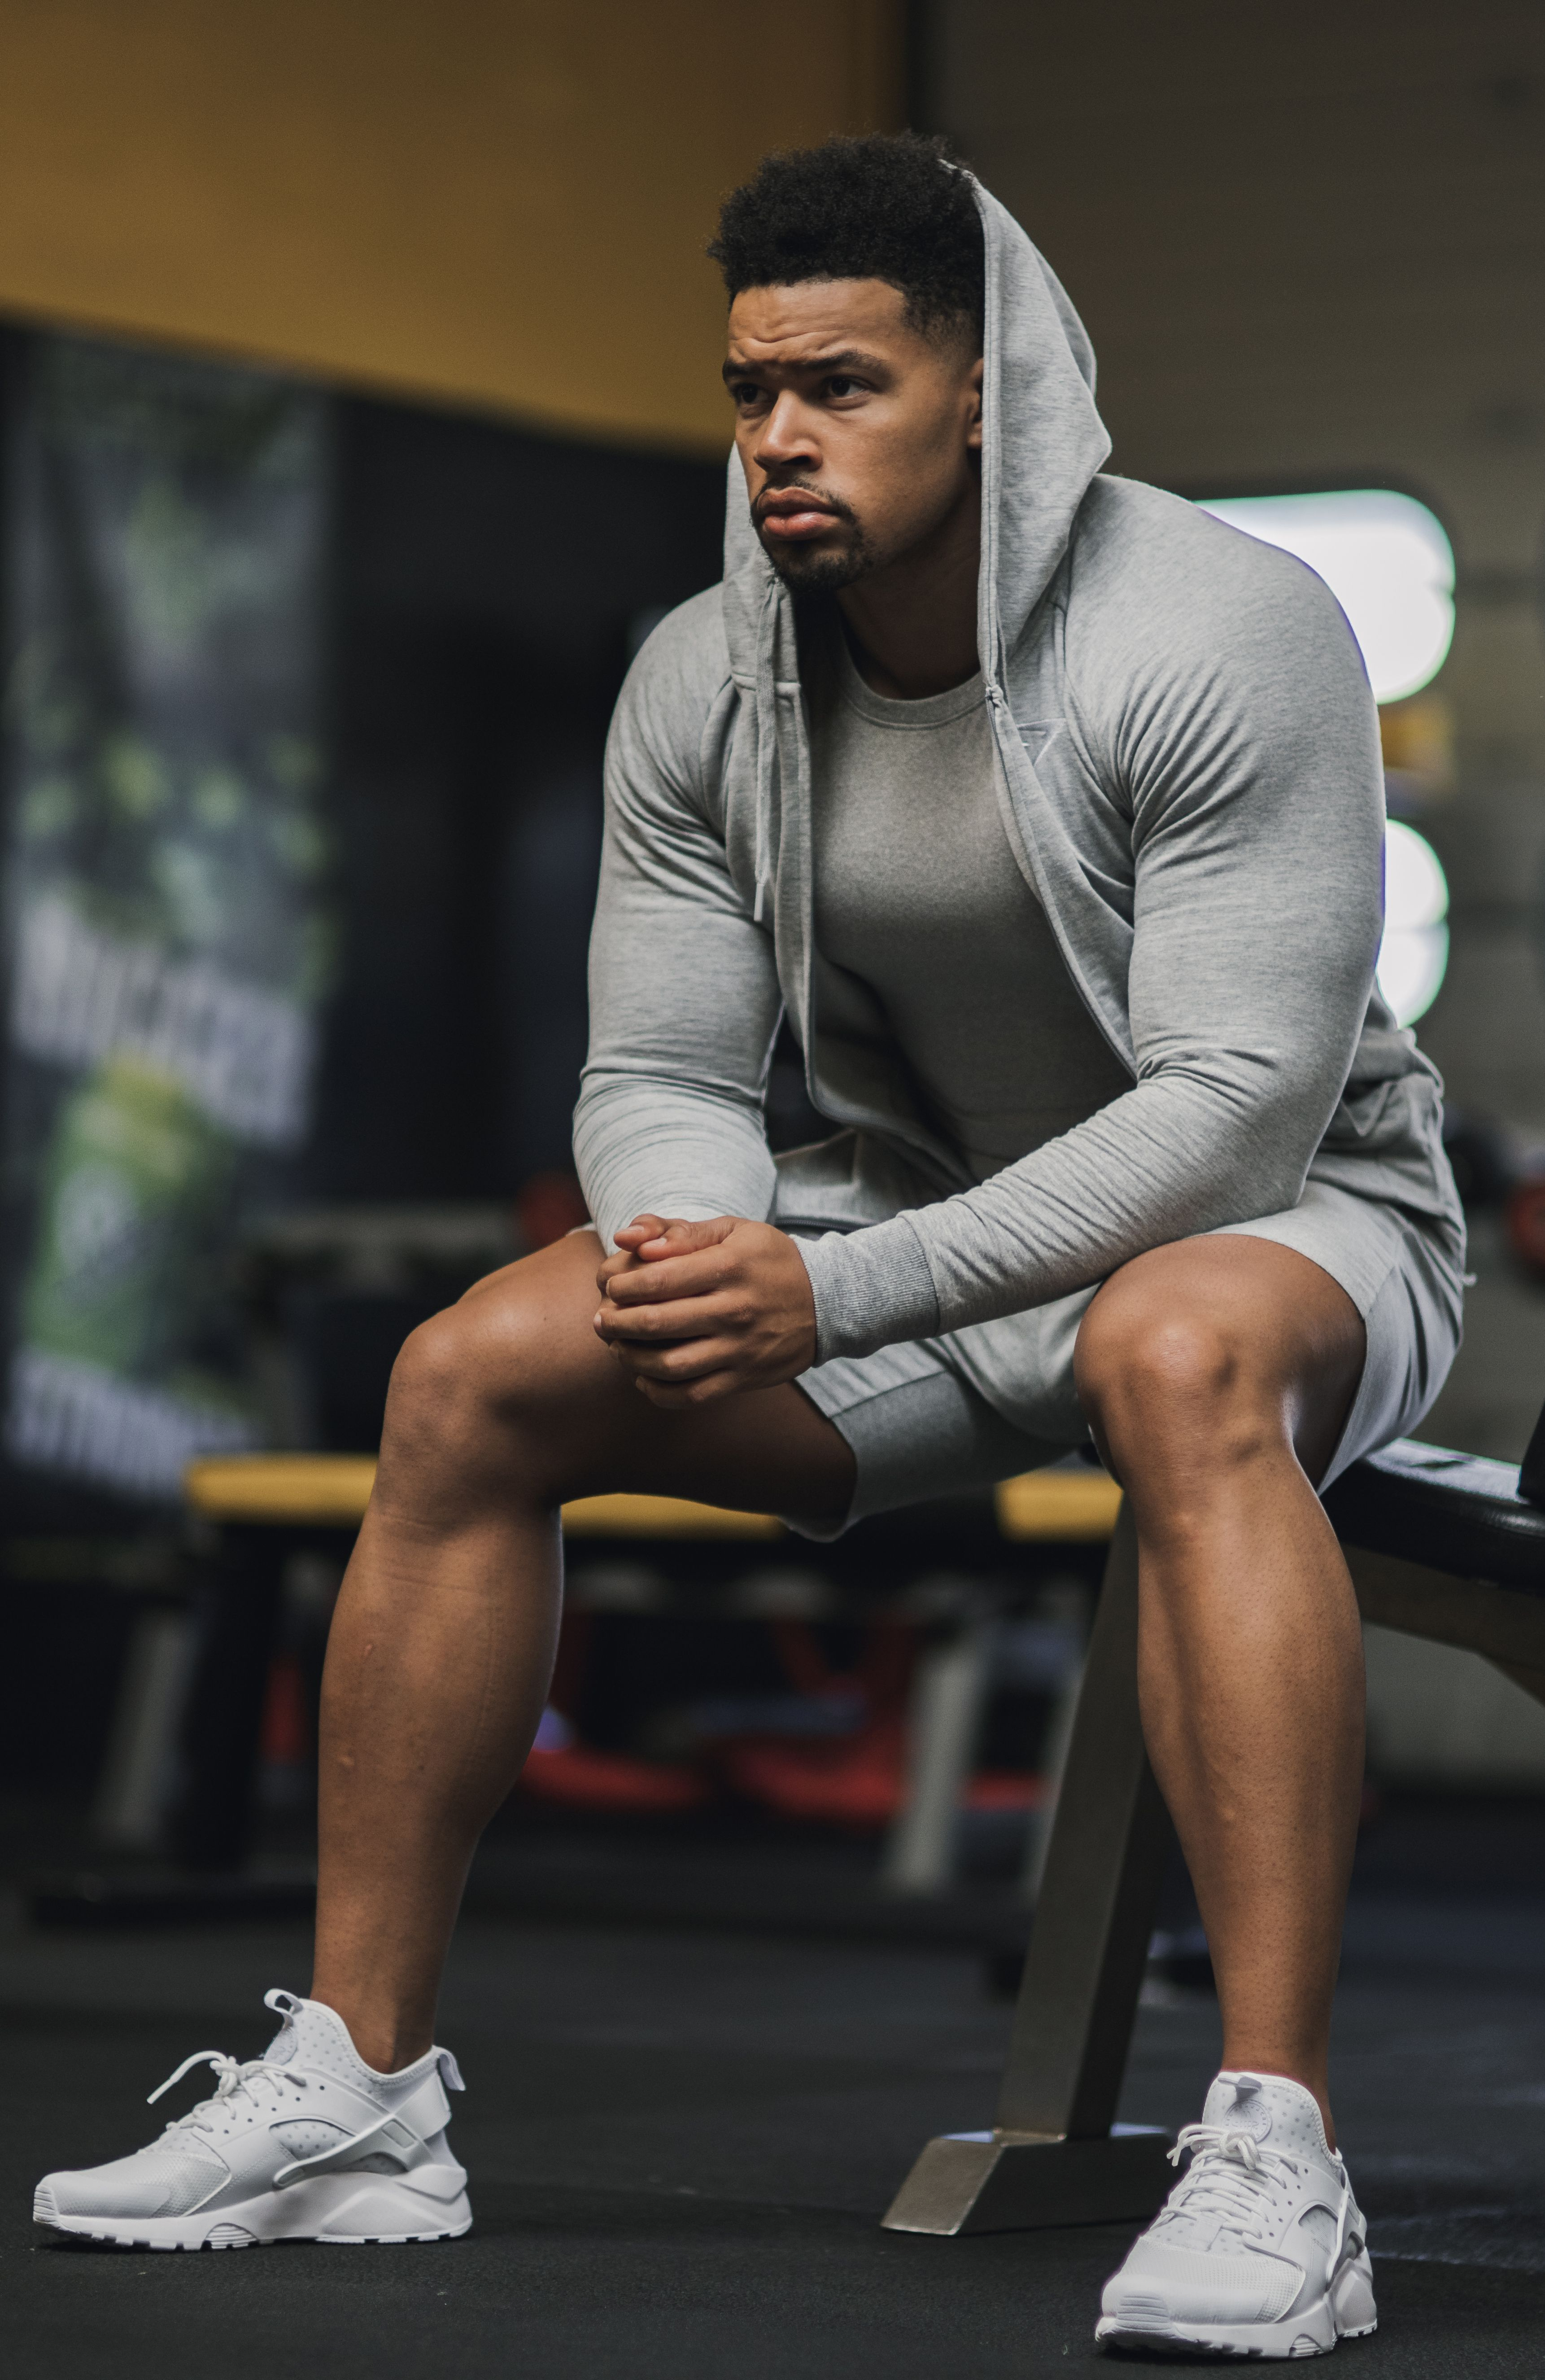 Find the right accessories for your workout from Reebok online. Shop men's bags, backpacks, gloves, gear, and more. Free shipping on orders over $